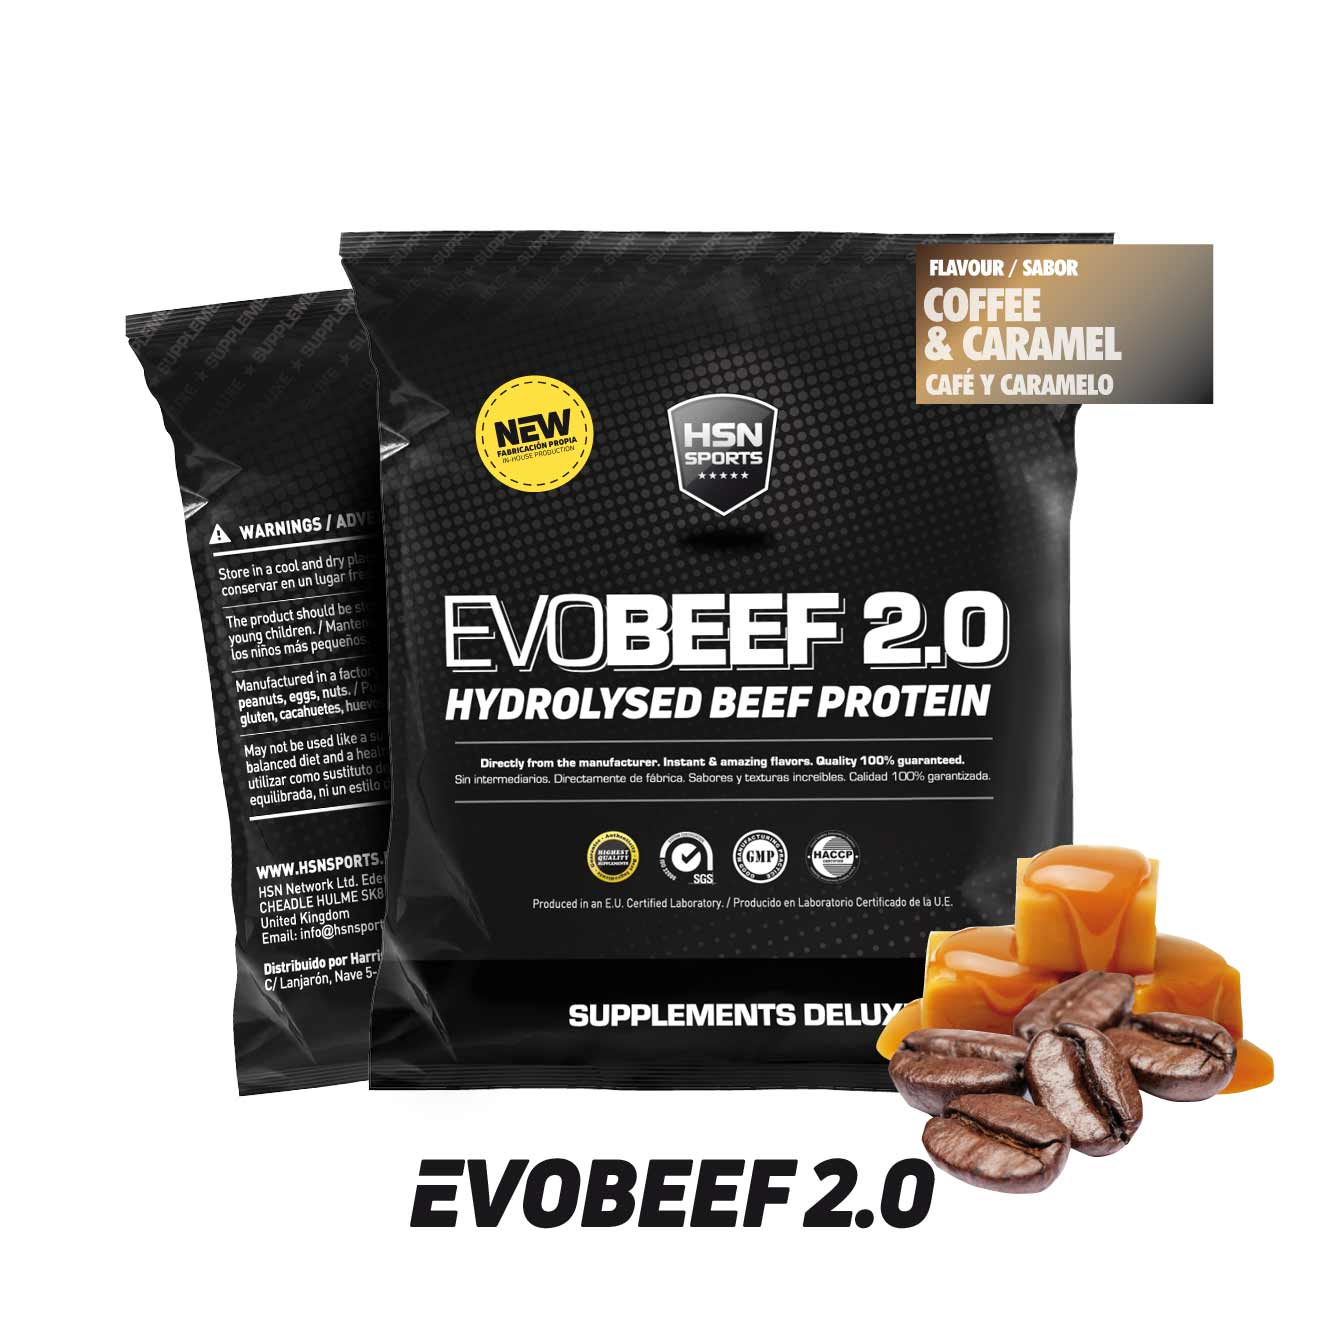 SAMPLE EVOBEEF 2.0 (HYDROLYZED BEEF) + EXTRA LEUCINE 30g COFFEE AND CARAMEL